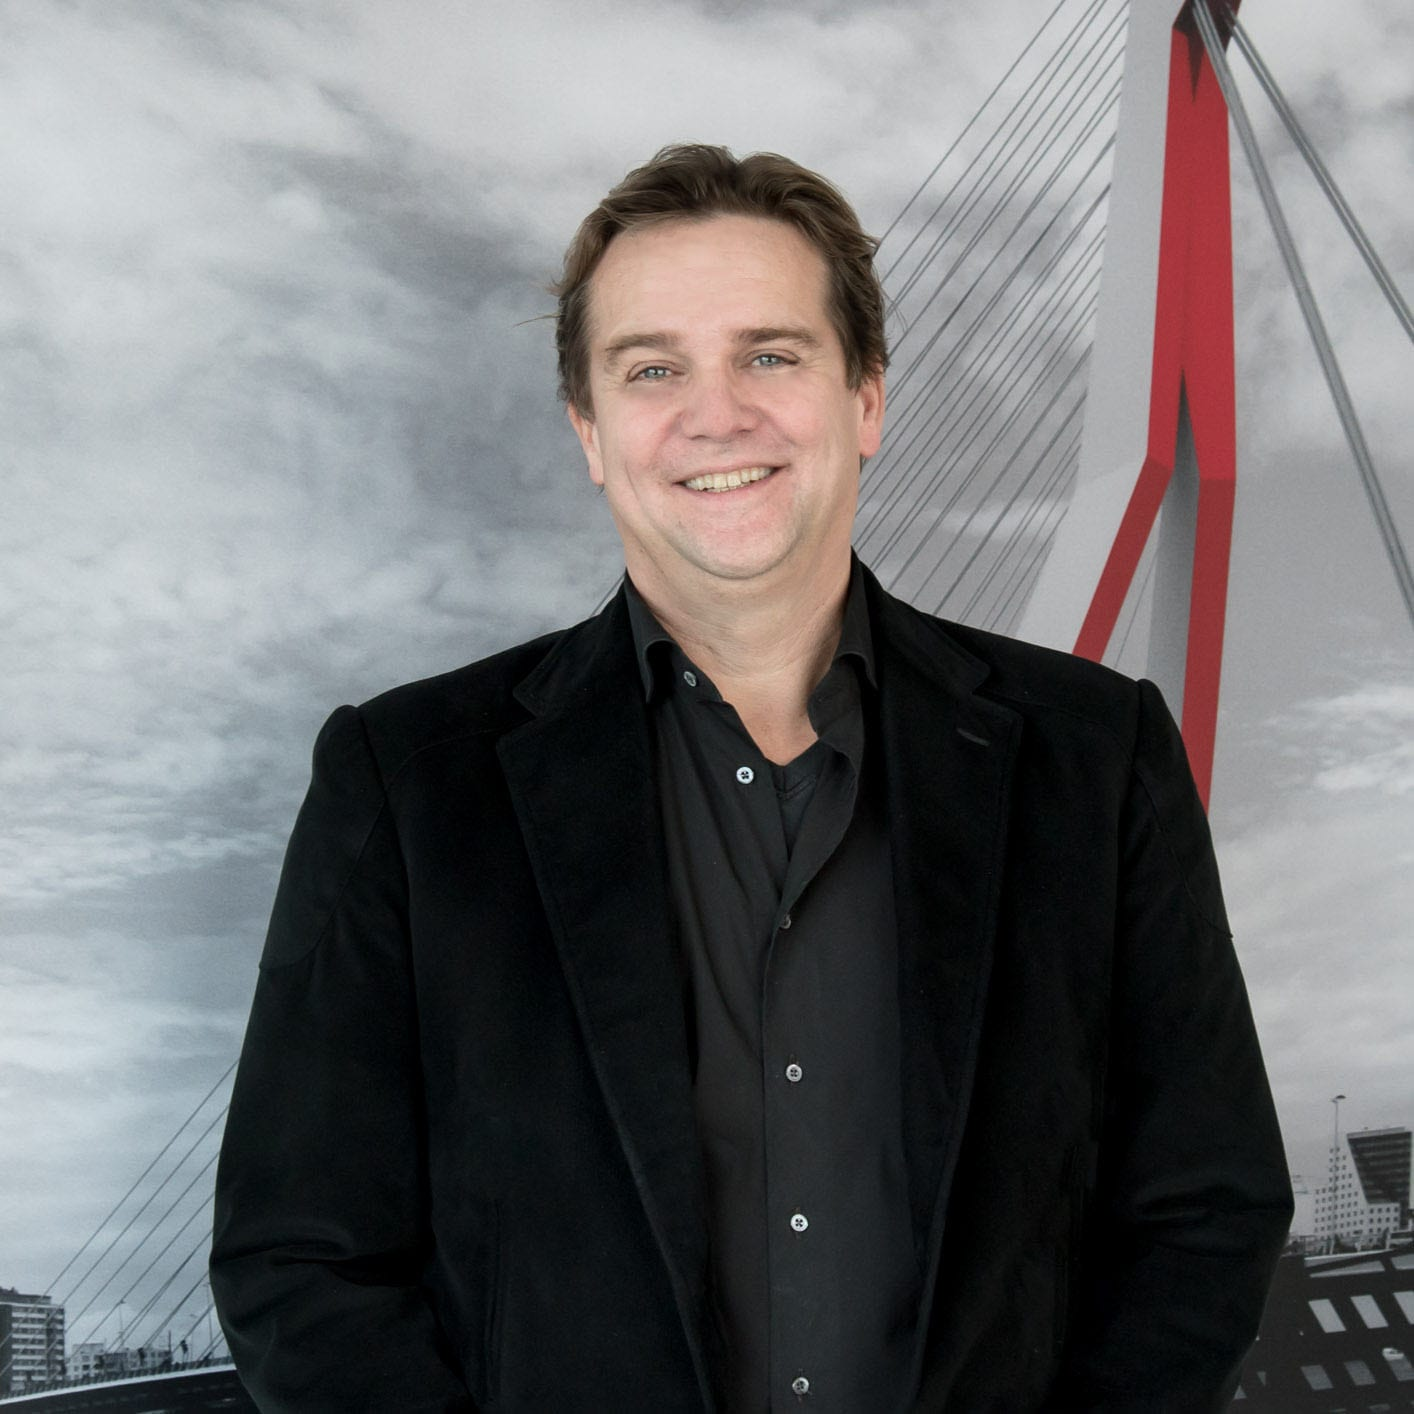 Den Hartogh Group Managing Director - Pieter den Hartogh